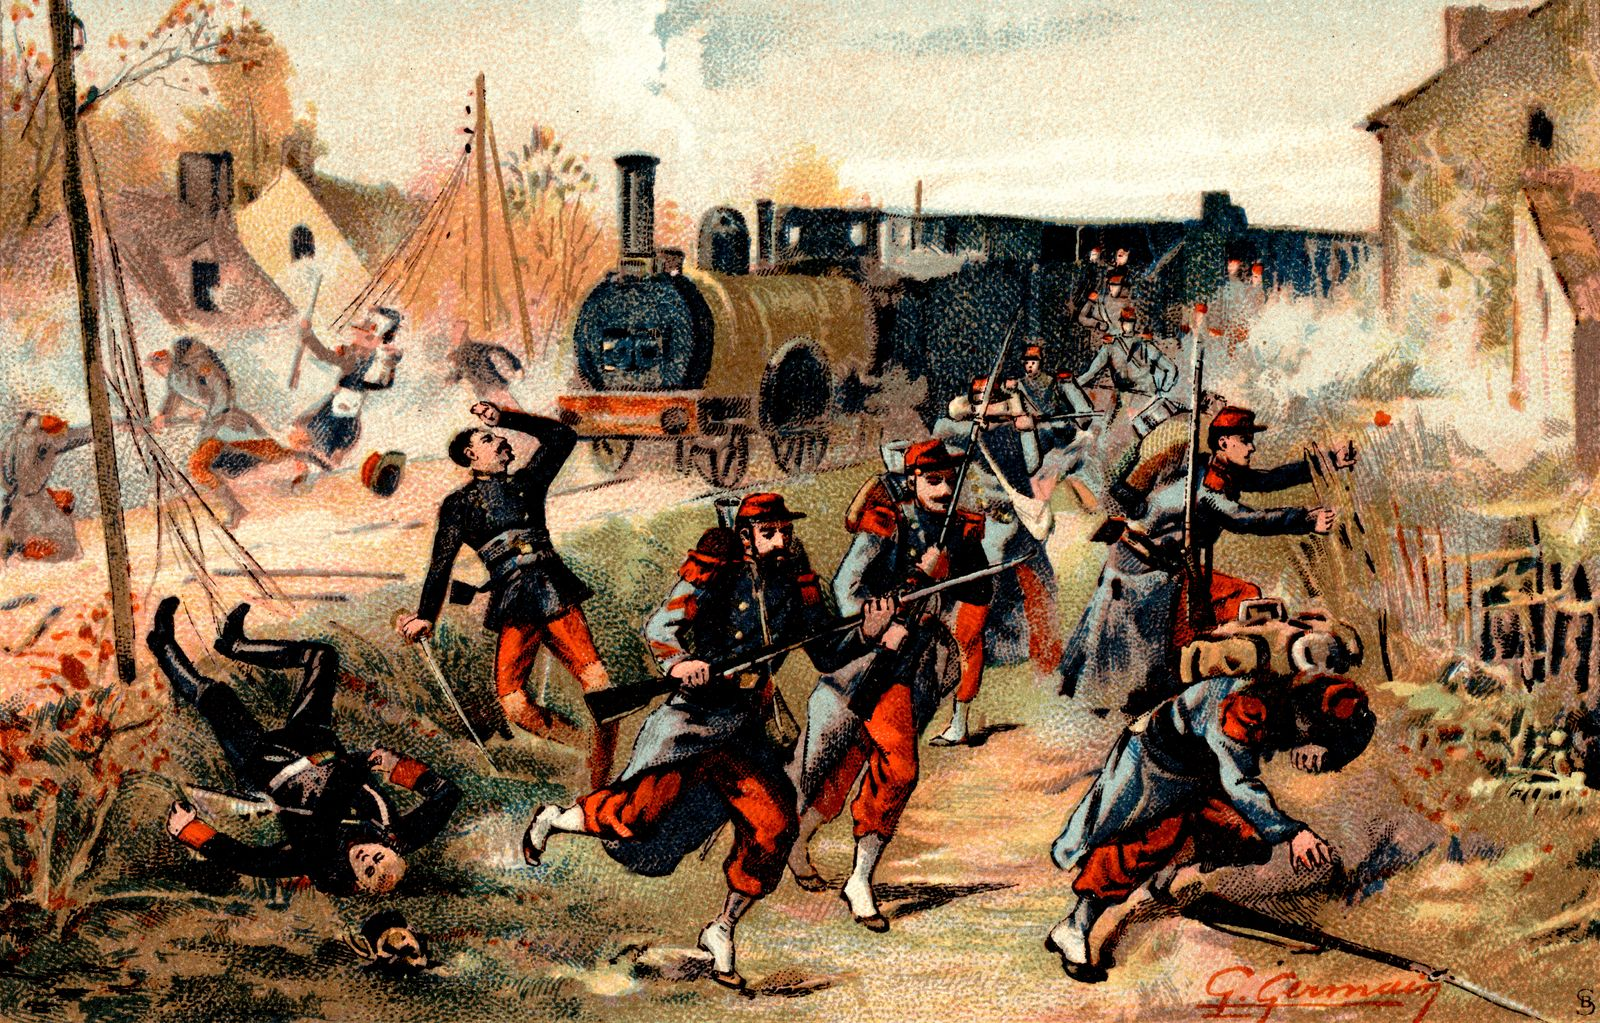 Franco-prussian war. Battle of Peltre during the siege of Metz (Moselle, France). On September 22, 1870.